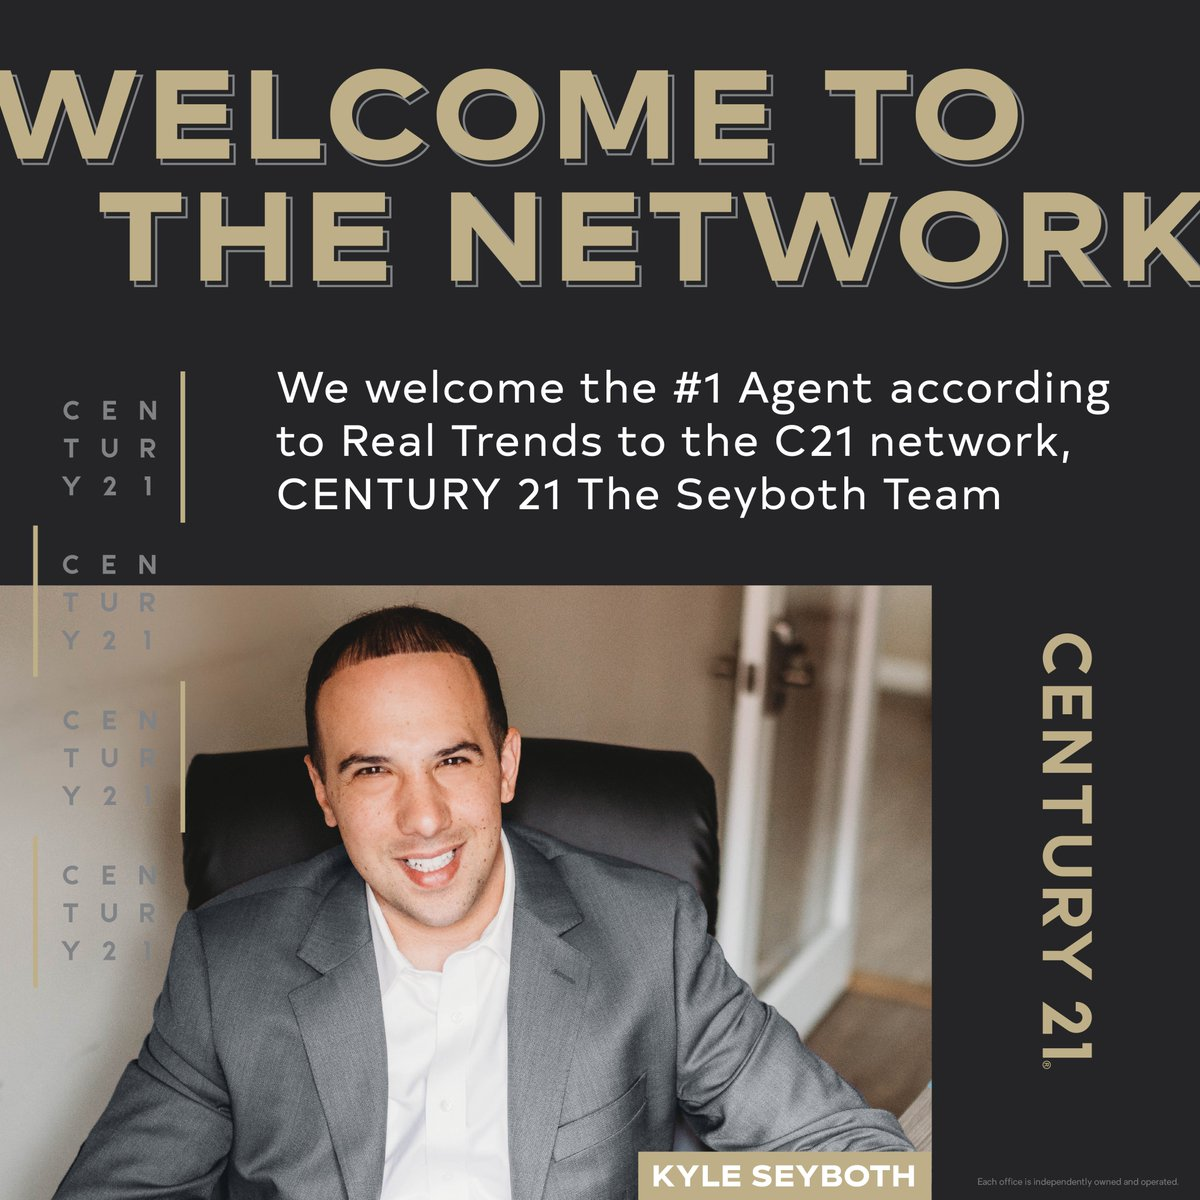 #C21Relentless, personified. Join us as we build momentum and welcome CENTURY 21 The Seyboth Team to the network! https://t.co/kS7fJocm8p